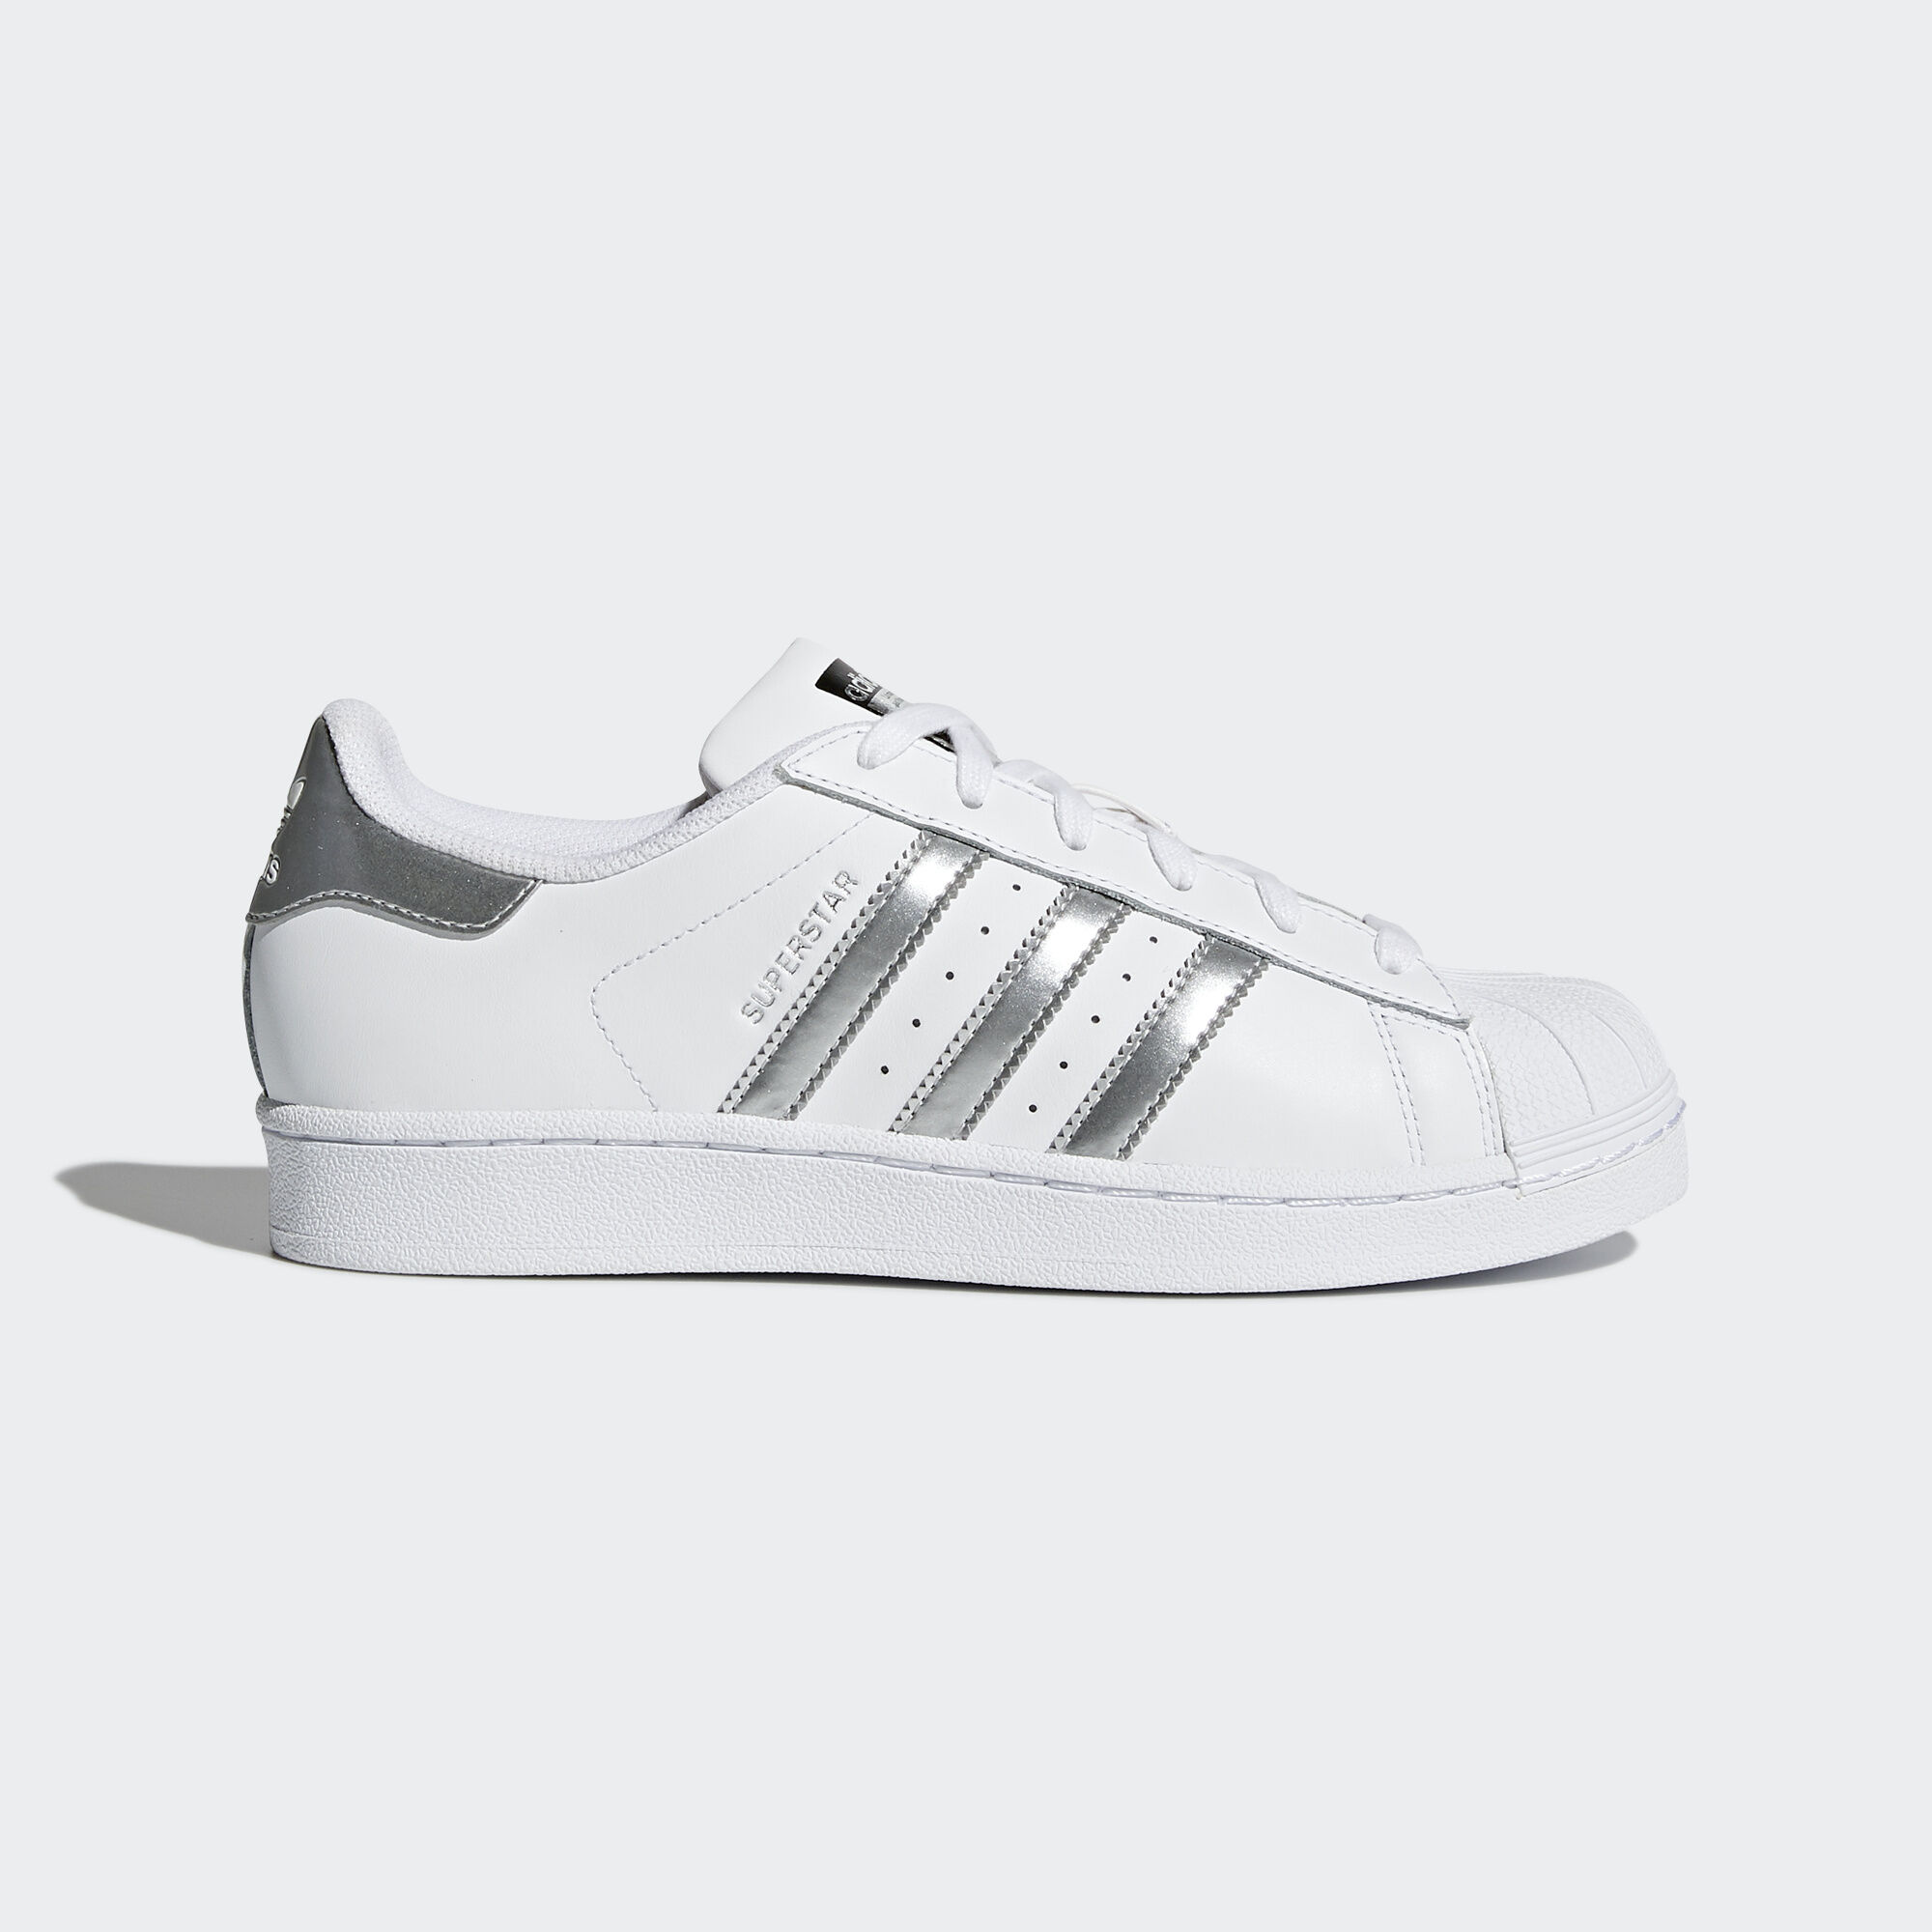 adidas superstar shoes white adidas uk. Black Bedroom Furniture Sets. Home Design Ideas